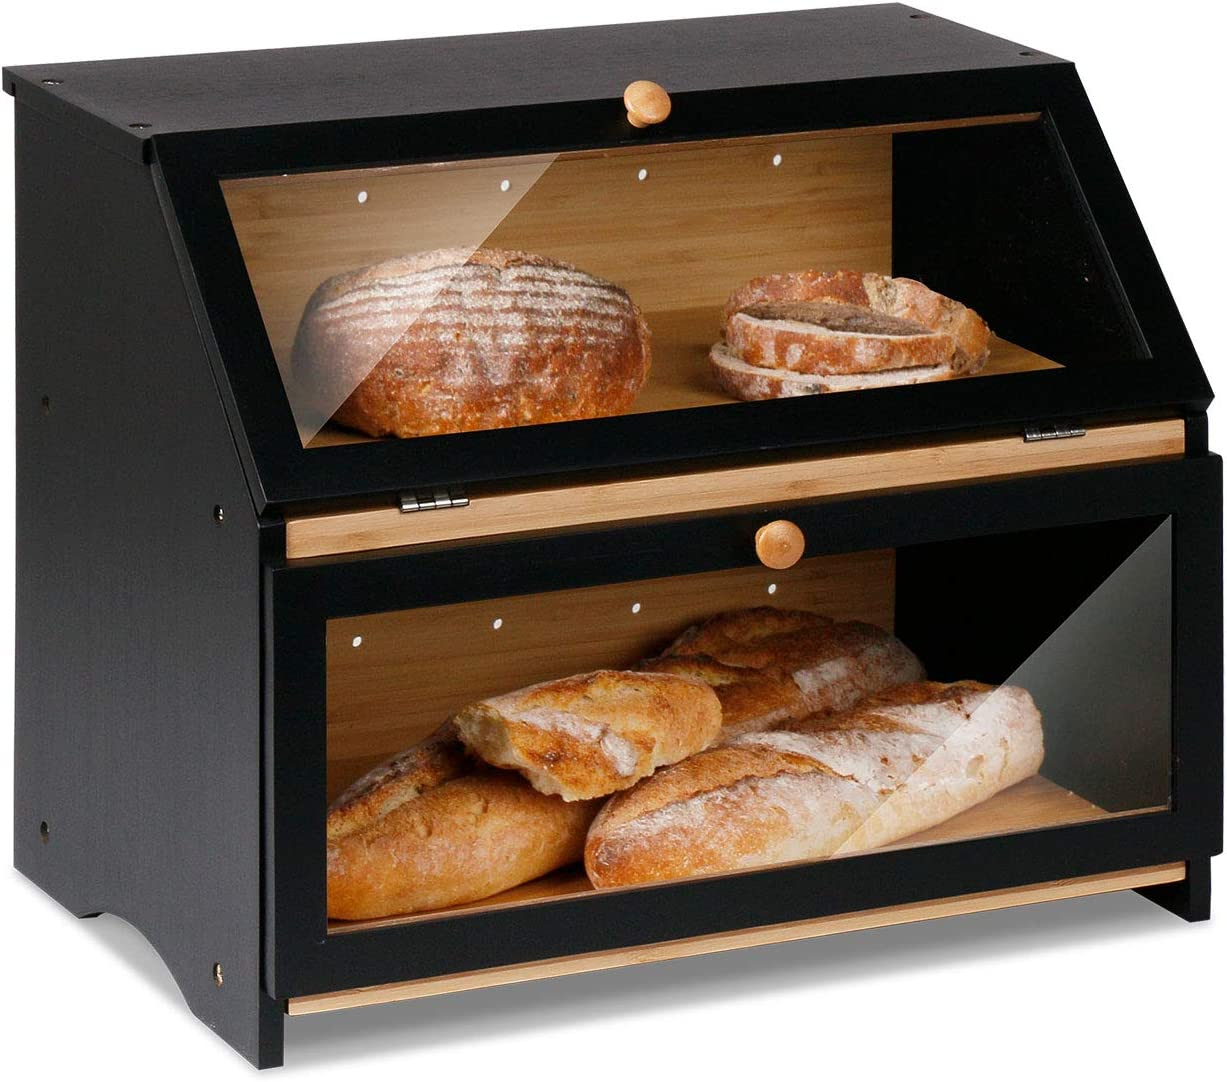 HOMEKOKO Double Layers Large Bread Box for Kitchen Counter, Wooden Large Capacity Bamboo Bread Food Storage Bin - Black (1 Pack)